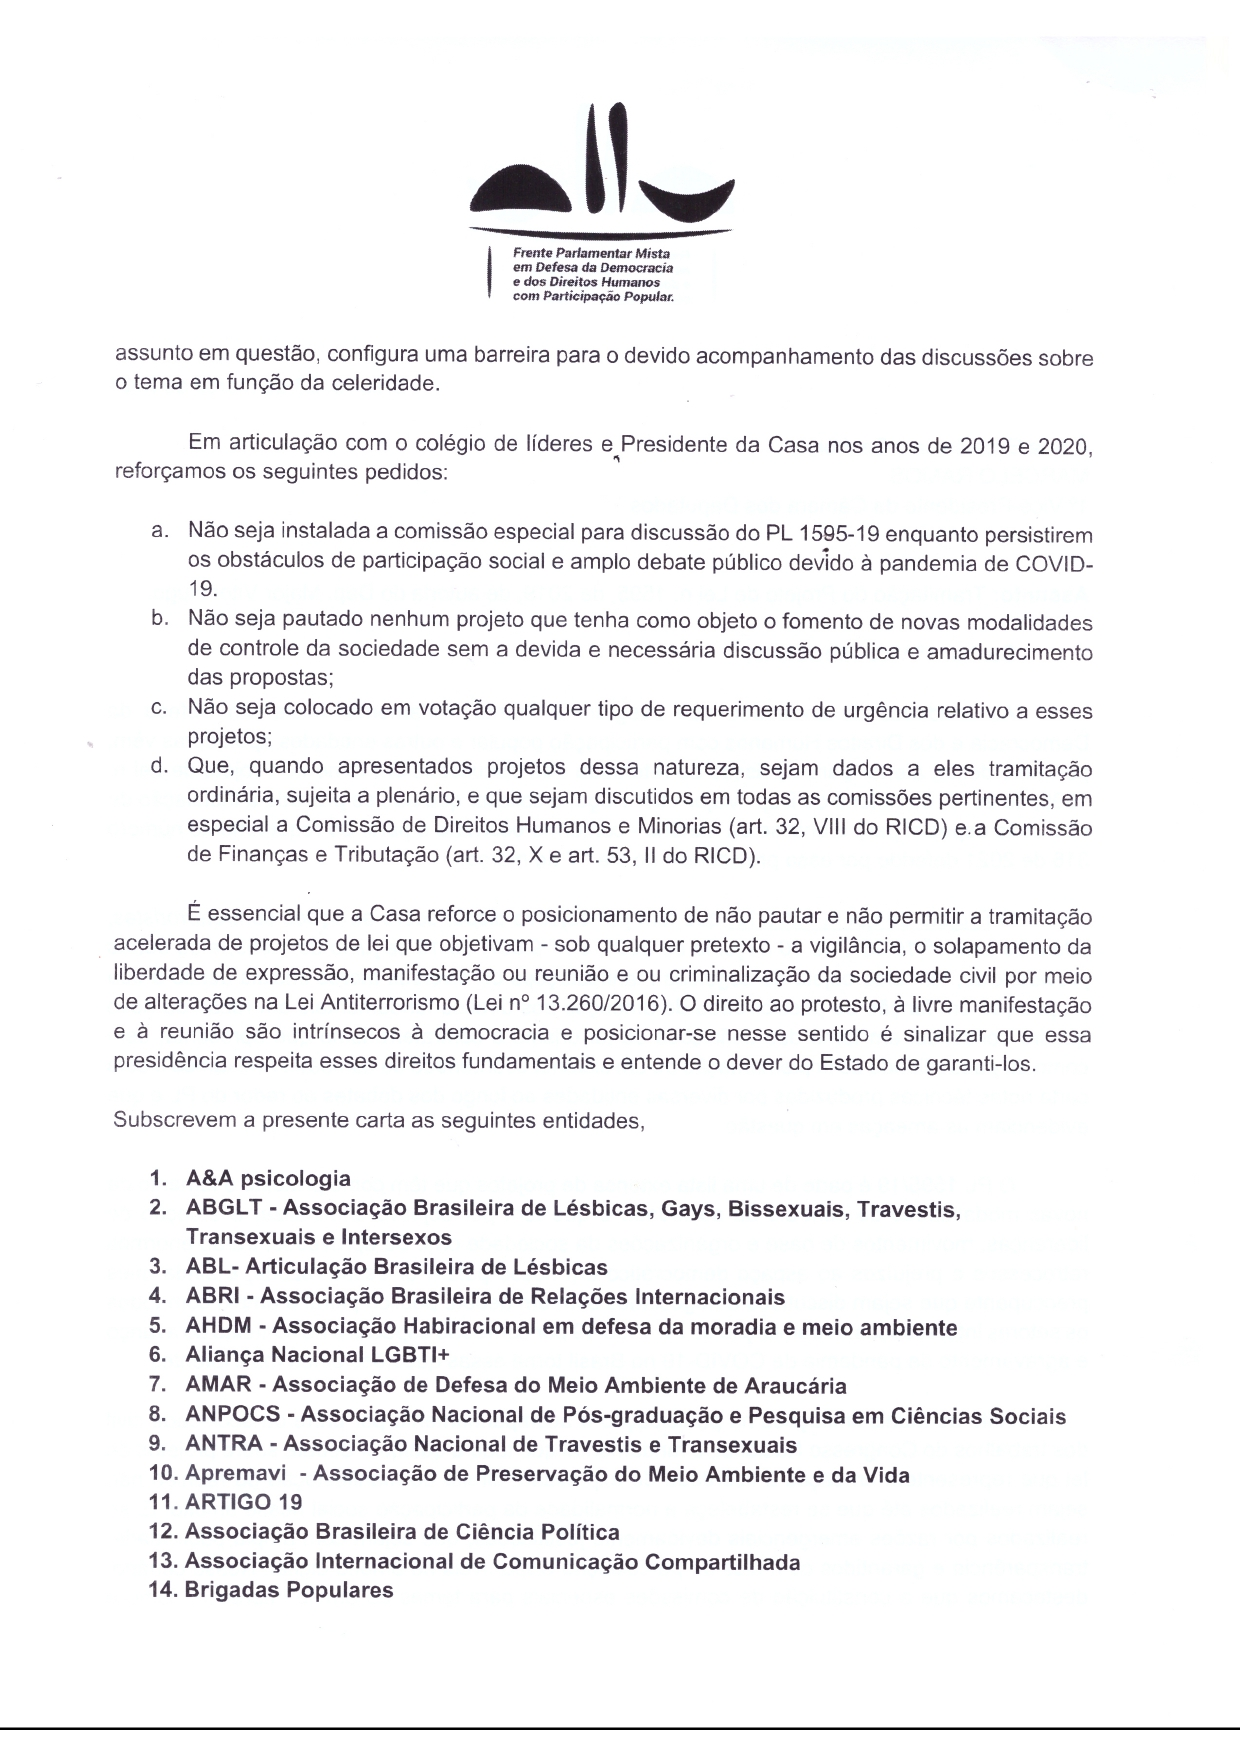 Carta PL 1595.2019.Assinada por Marcelo Ramos (1)_pages-to-jpg-0002